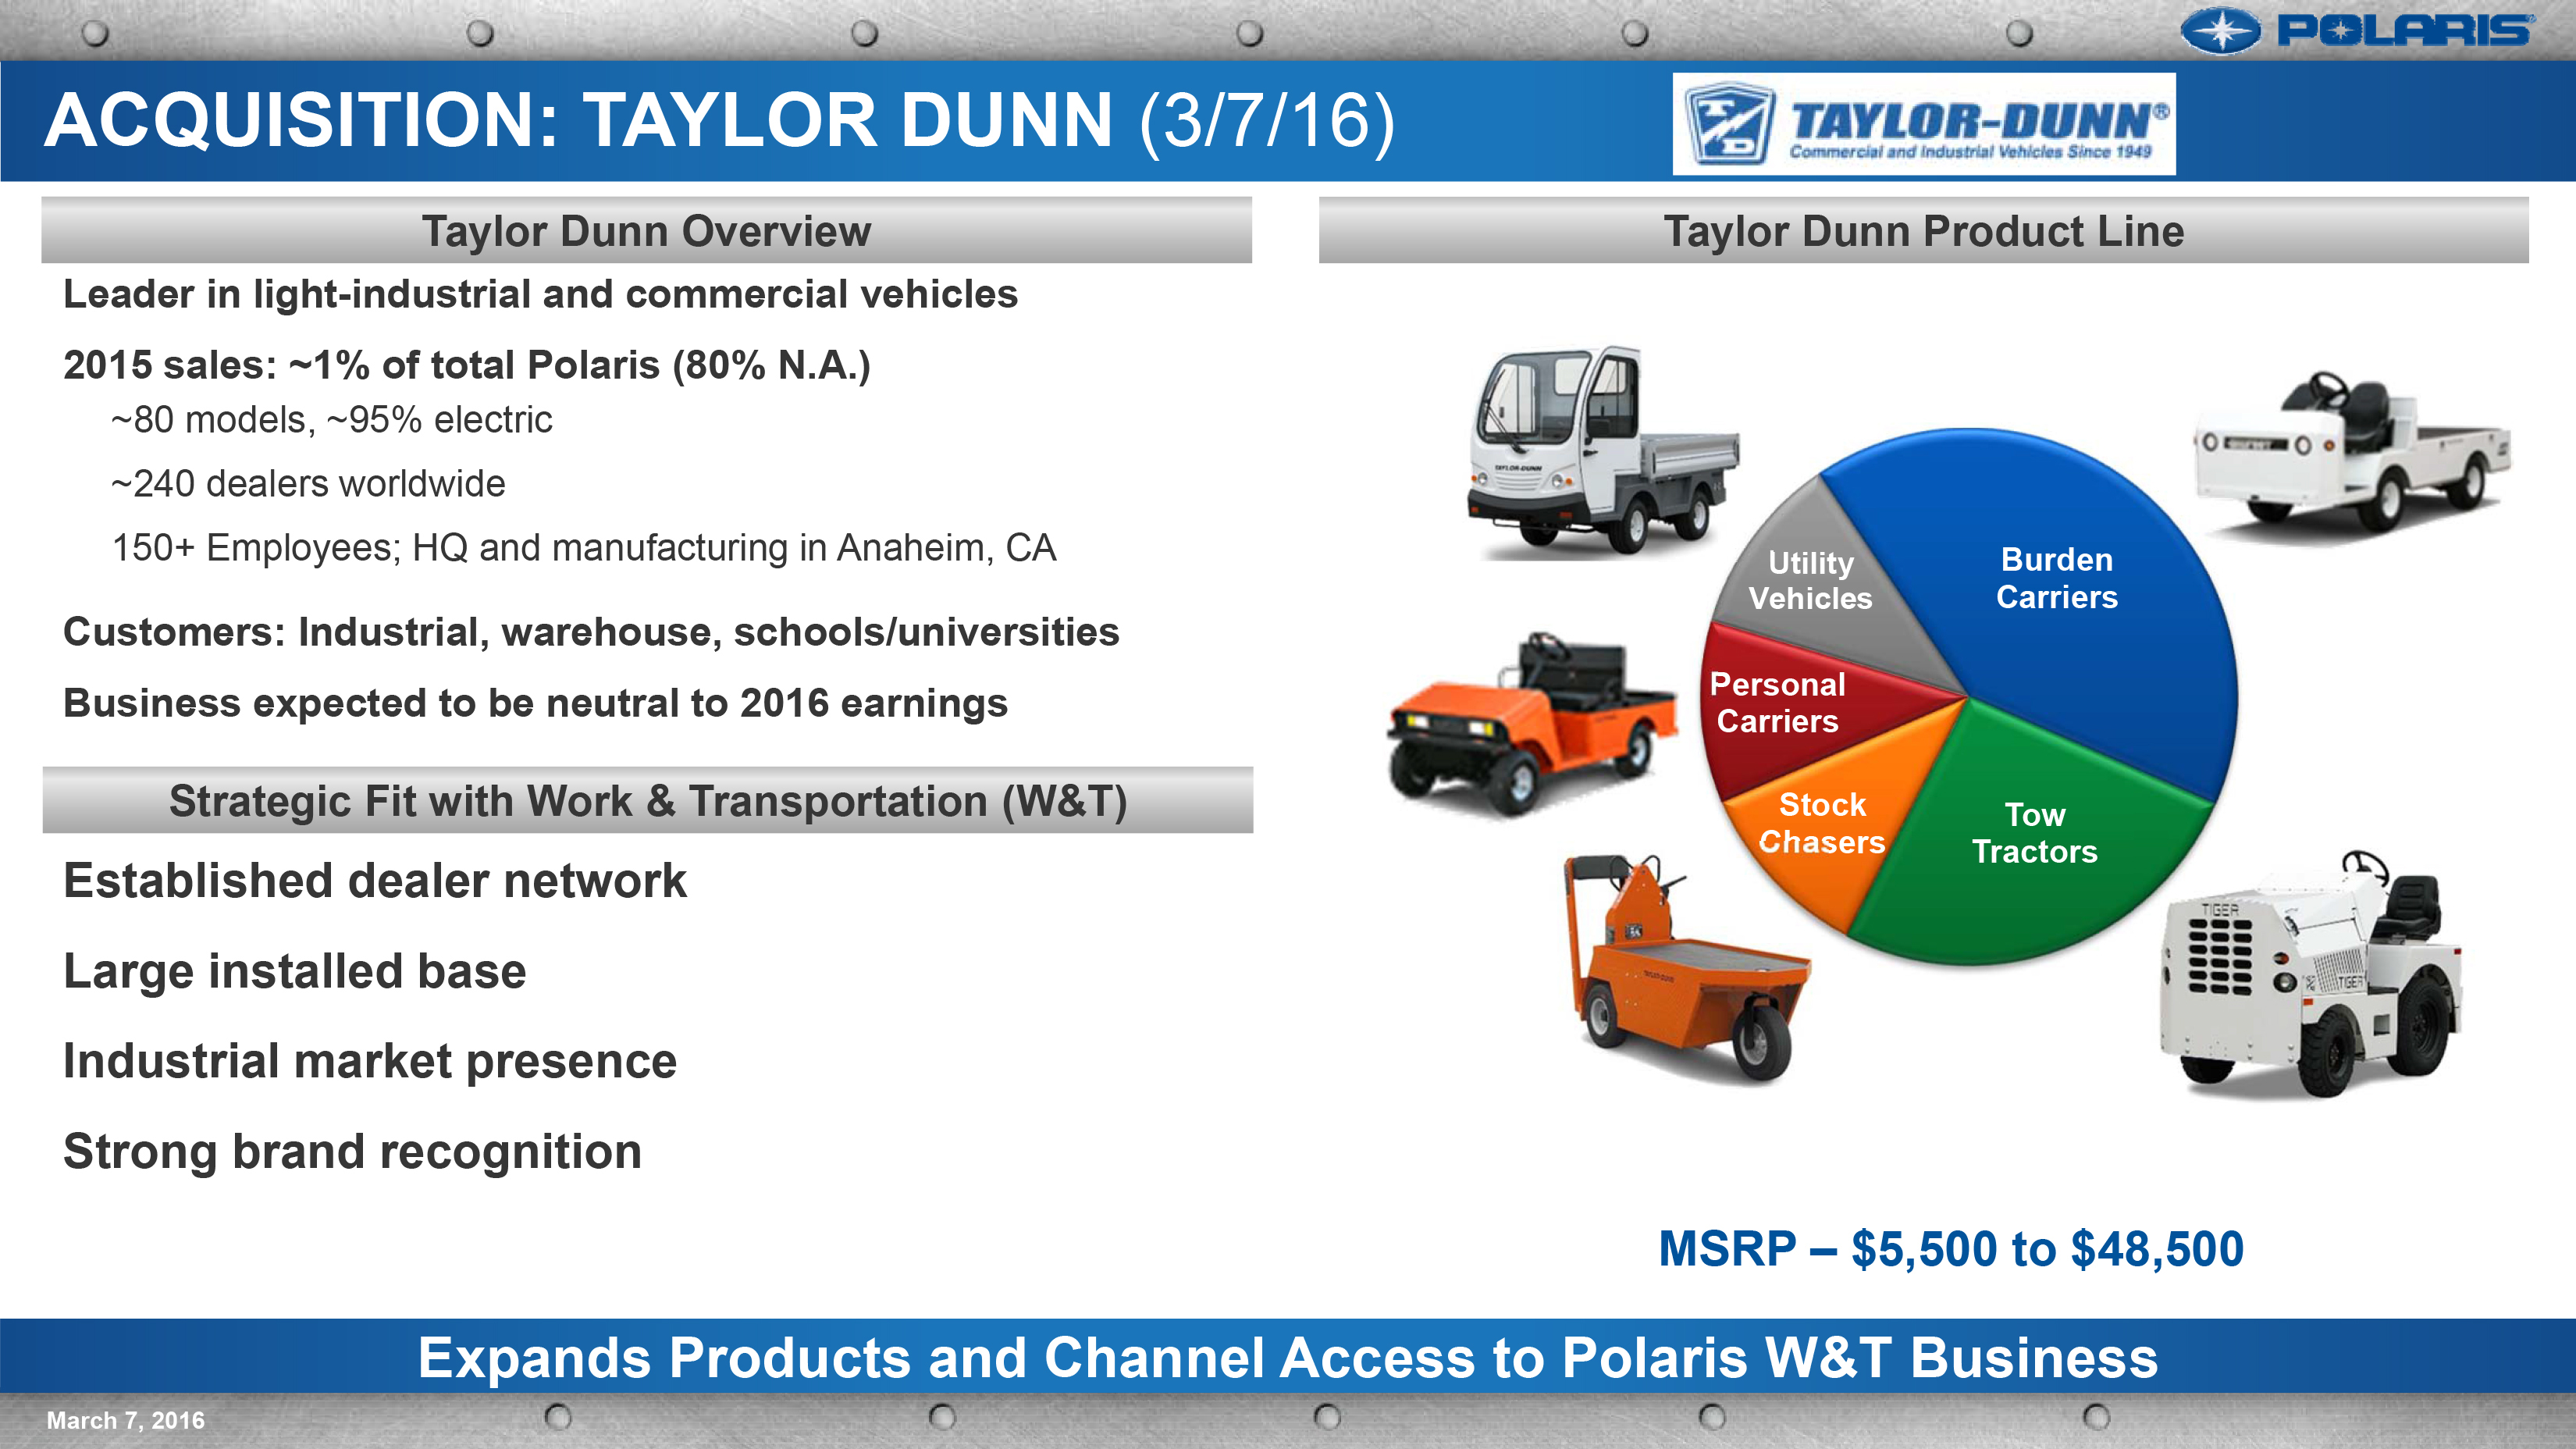 2497631_TaylorDunn_3 7 16_F %281%29 polaris acquires taylor dunn business wire taylor dunn wiring diagram at panicattacktreatment.co